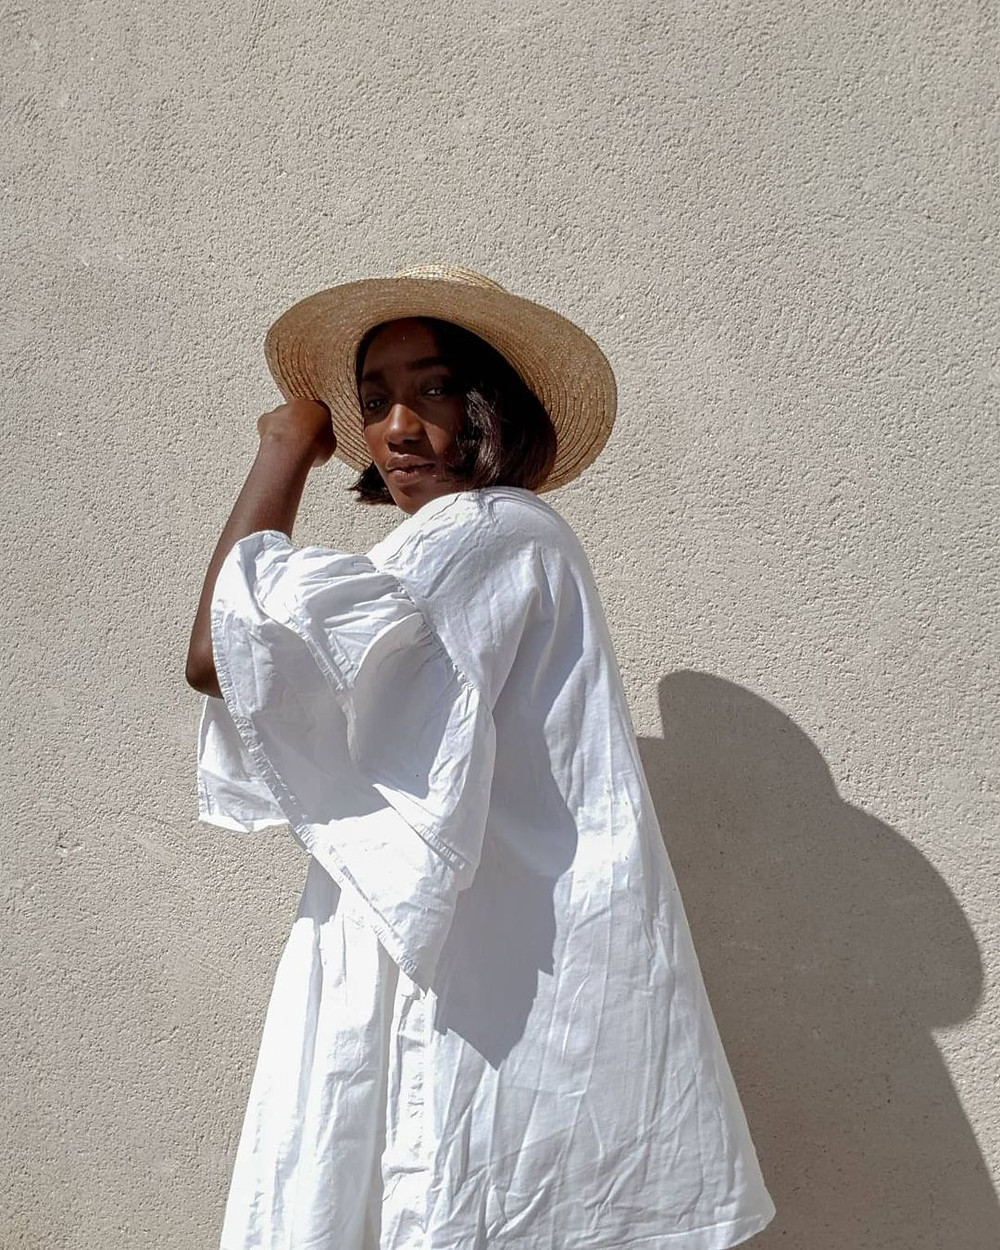 woman wearing white dress and straw hat